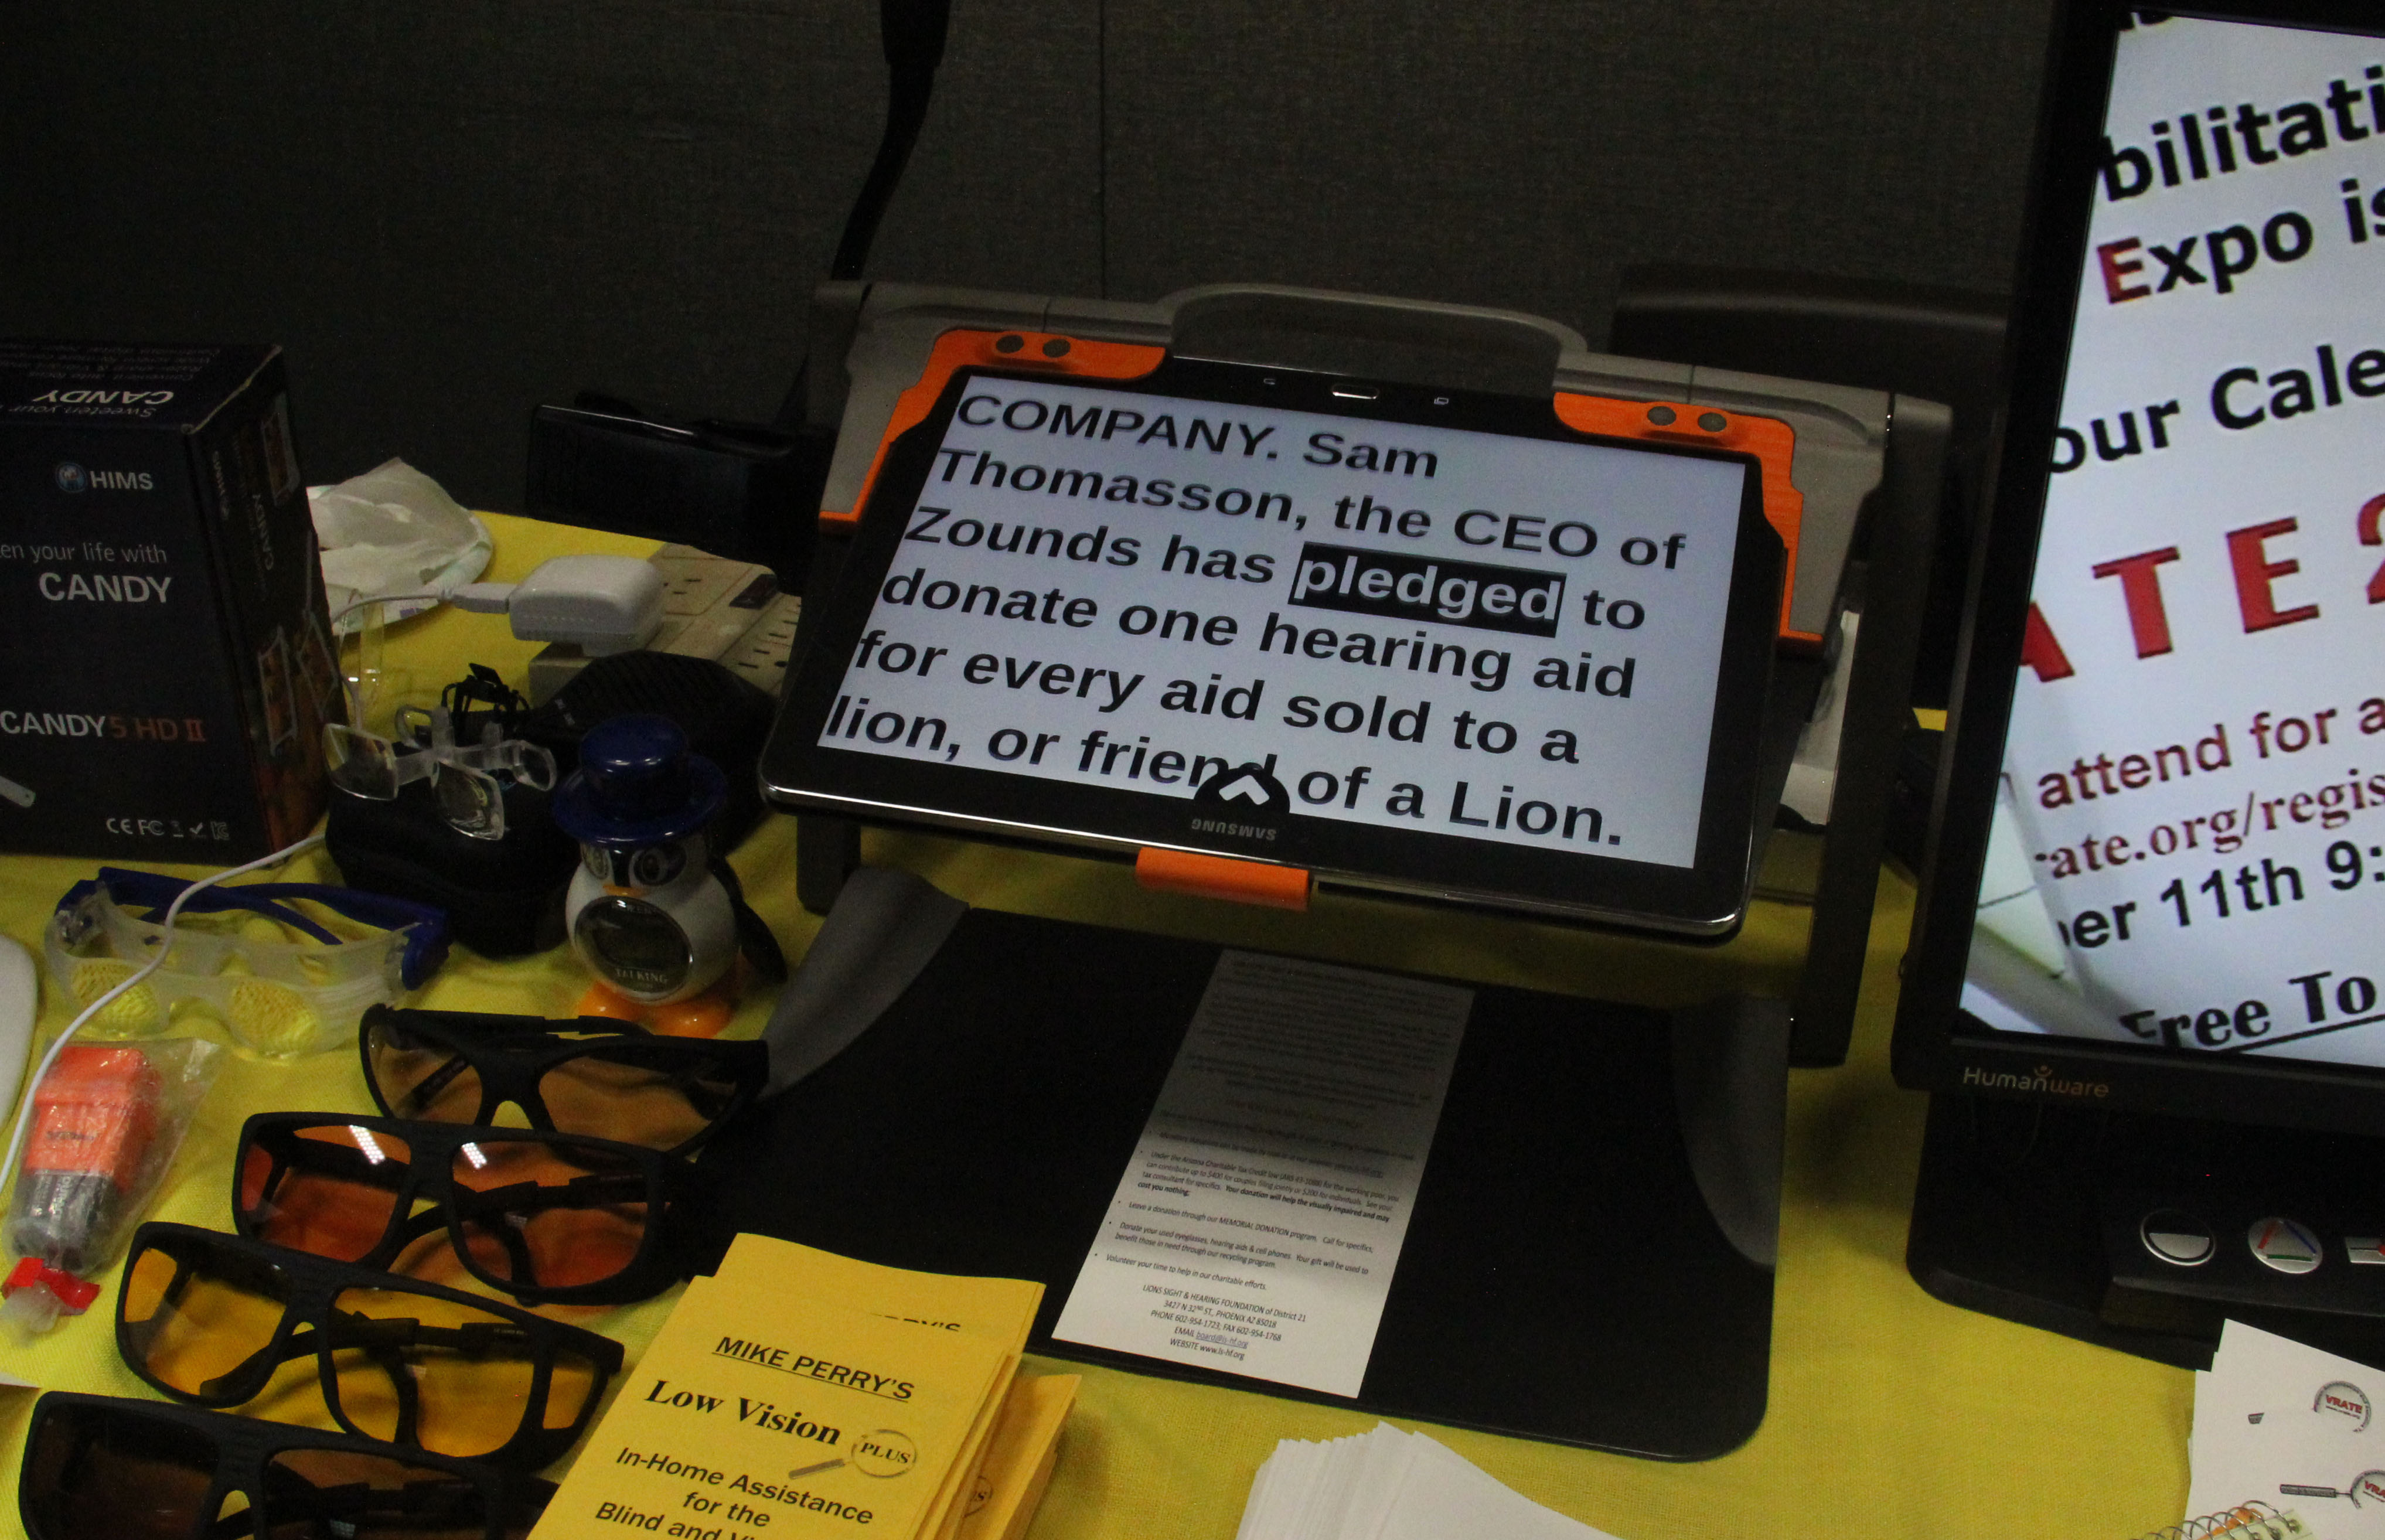 could news touchable tablets blinds tablet guide for epfl blind the